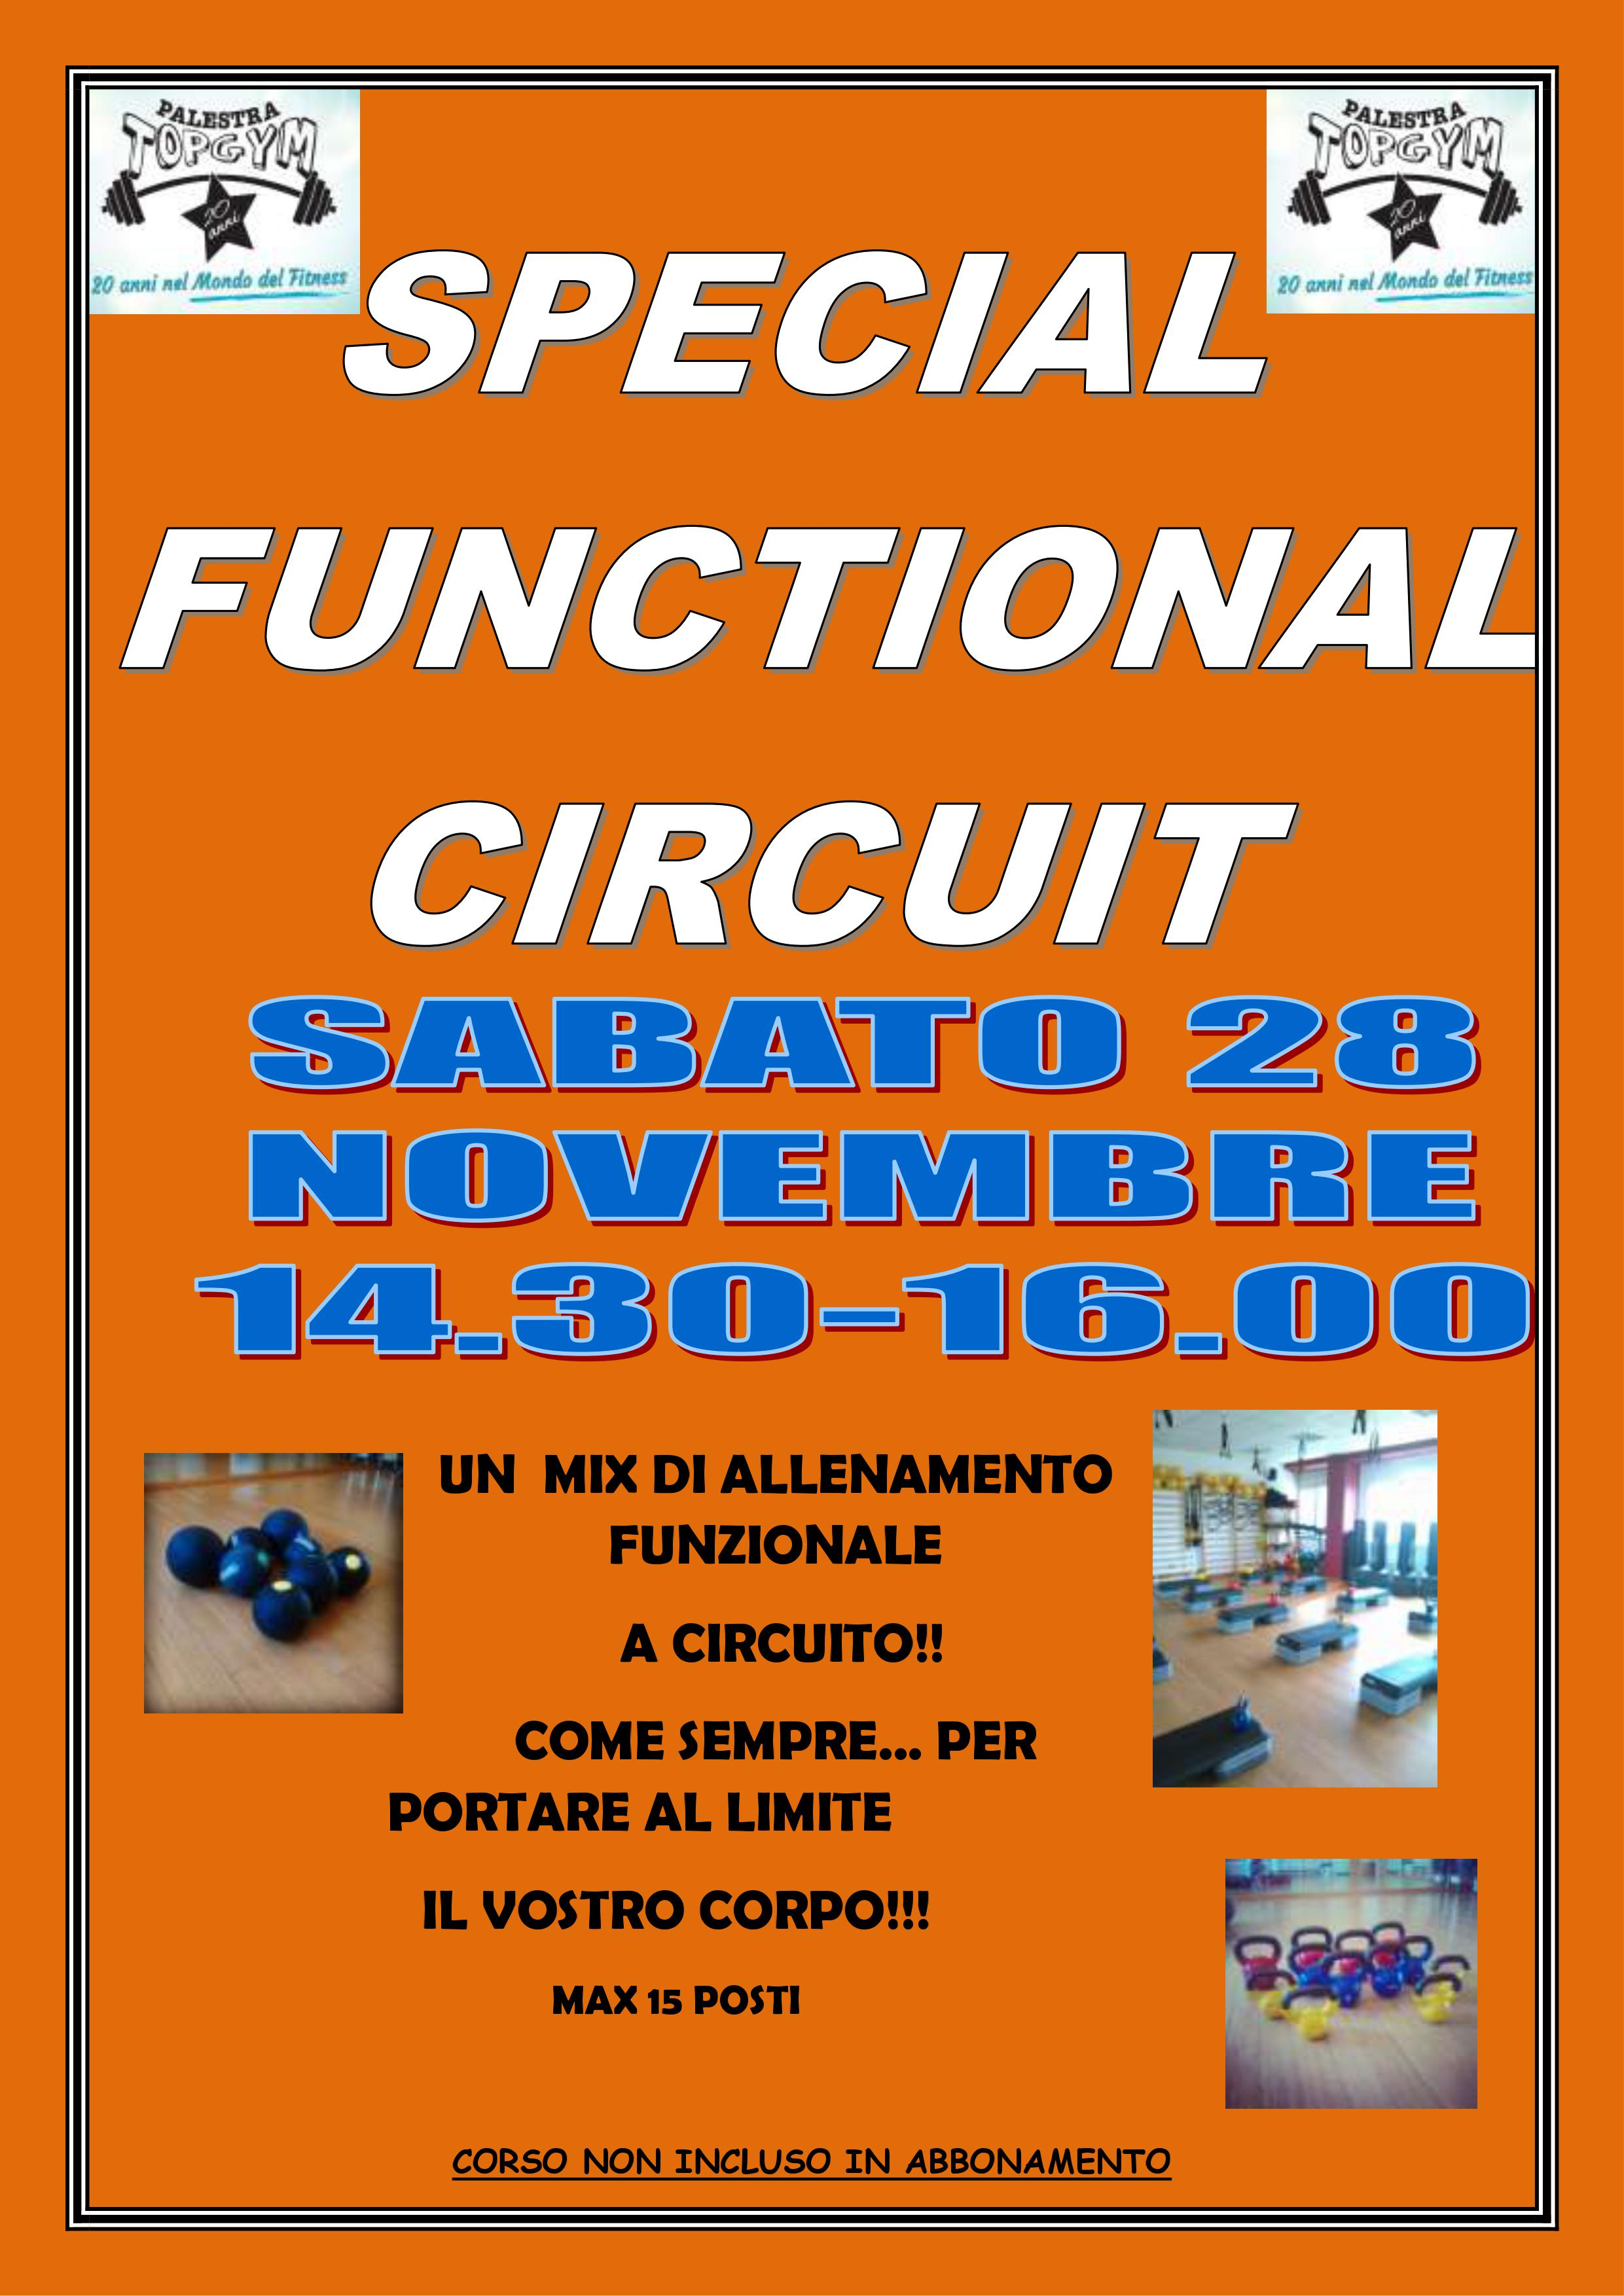 Special Functional Circuit